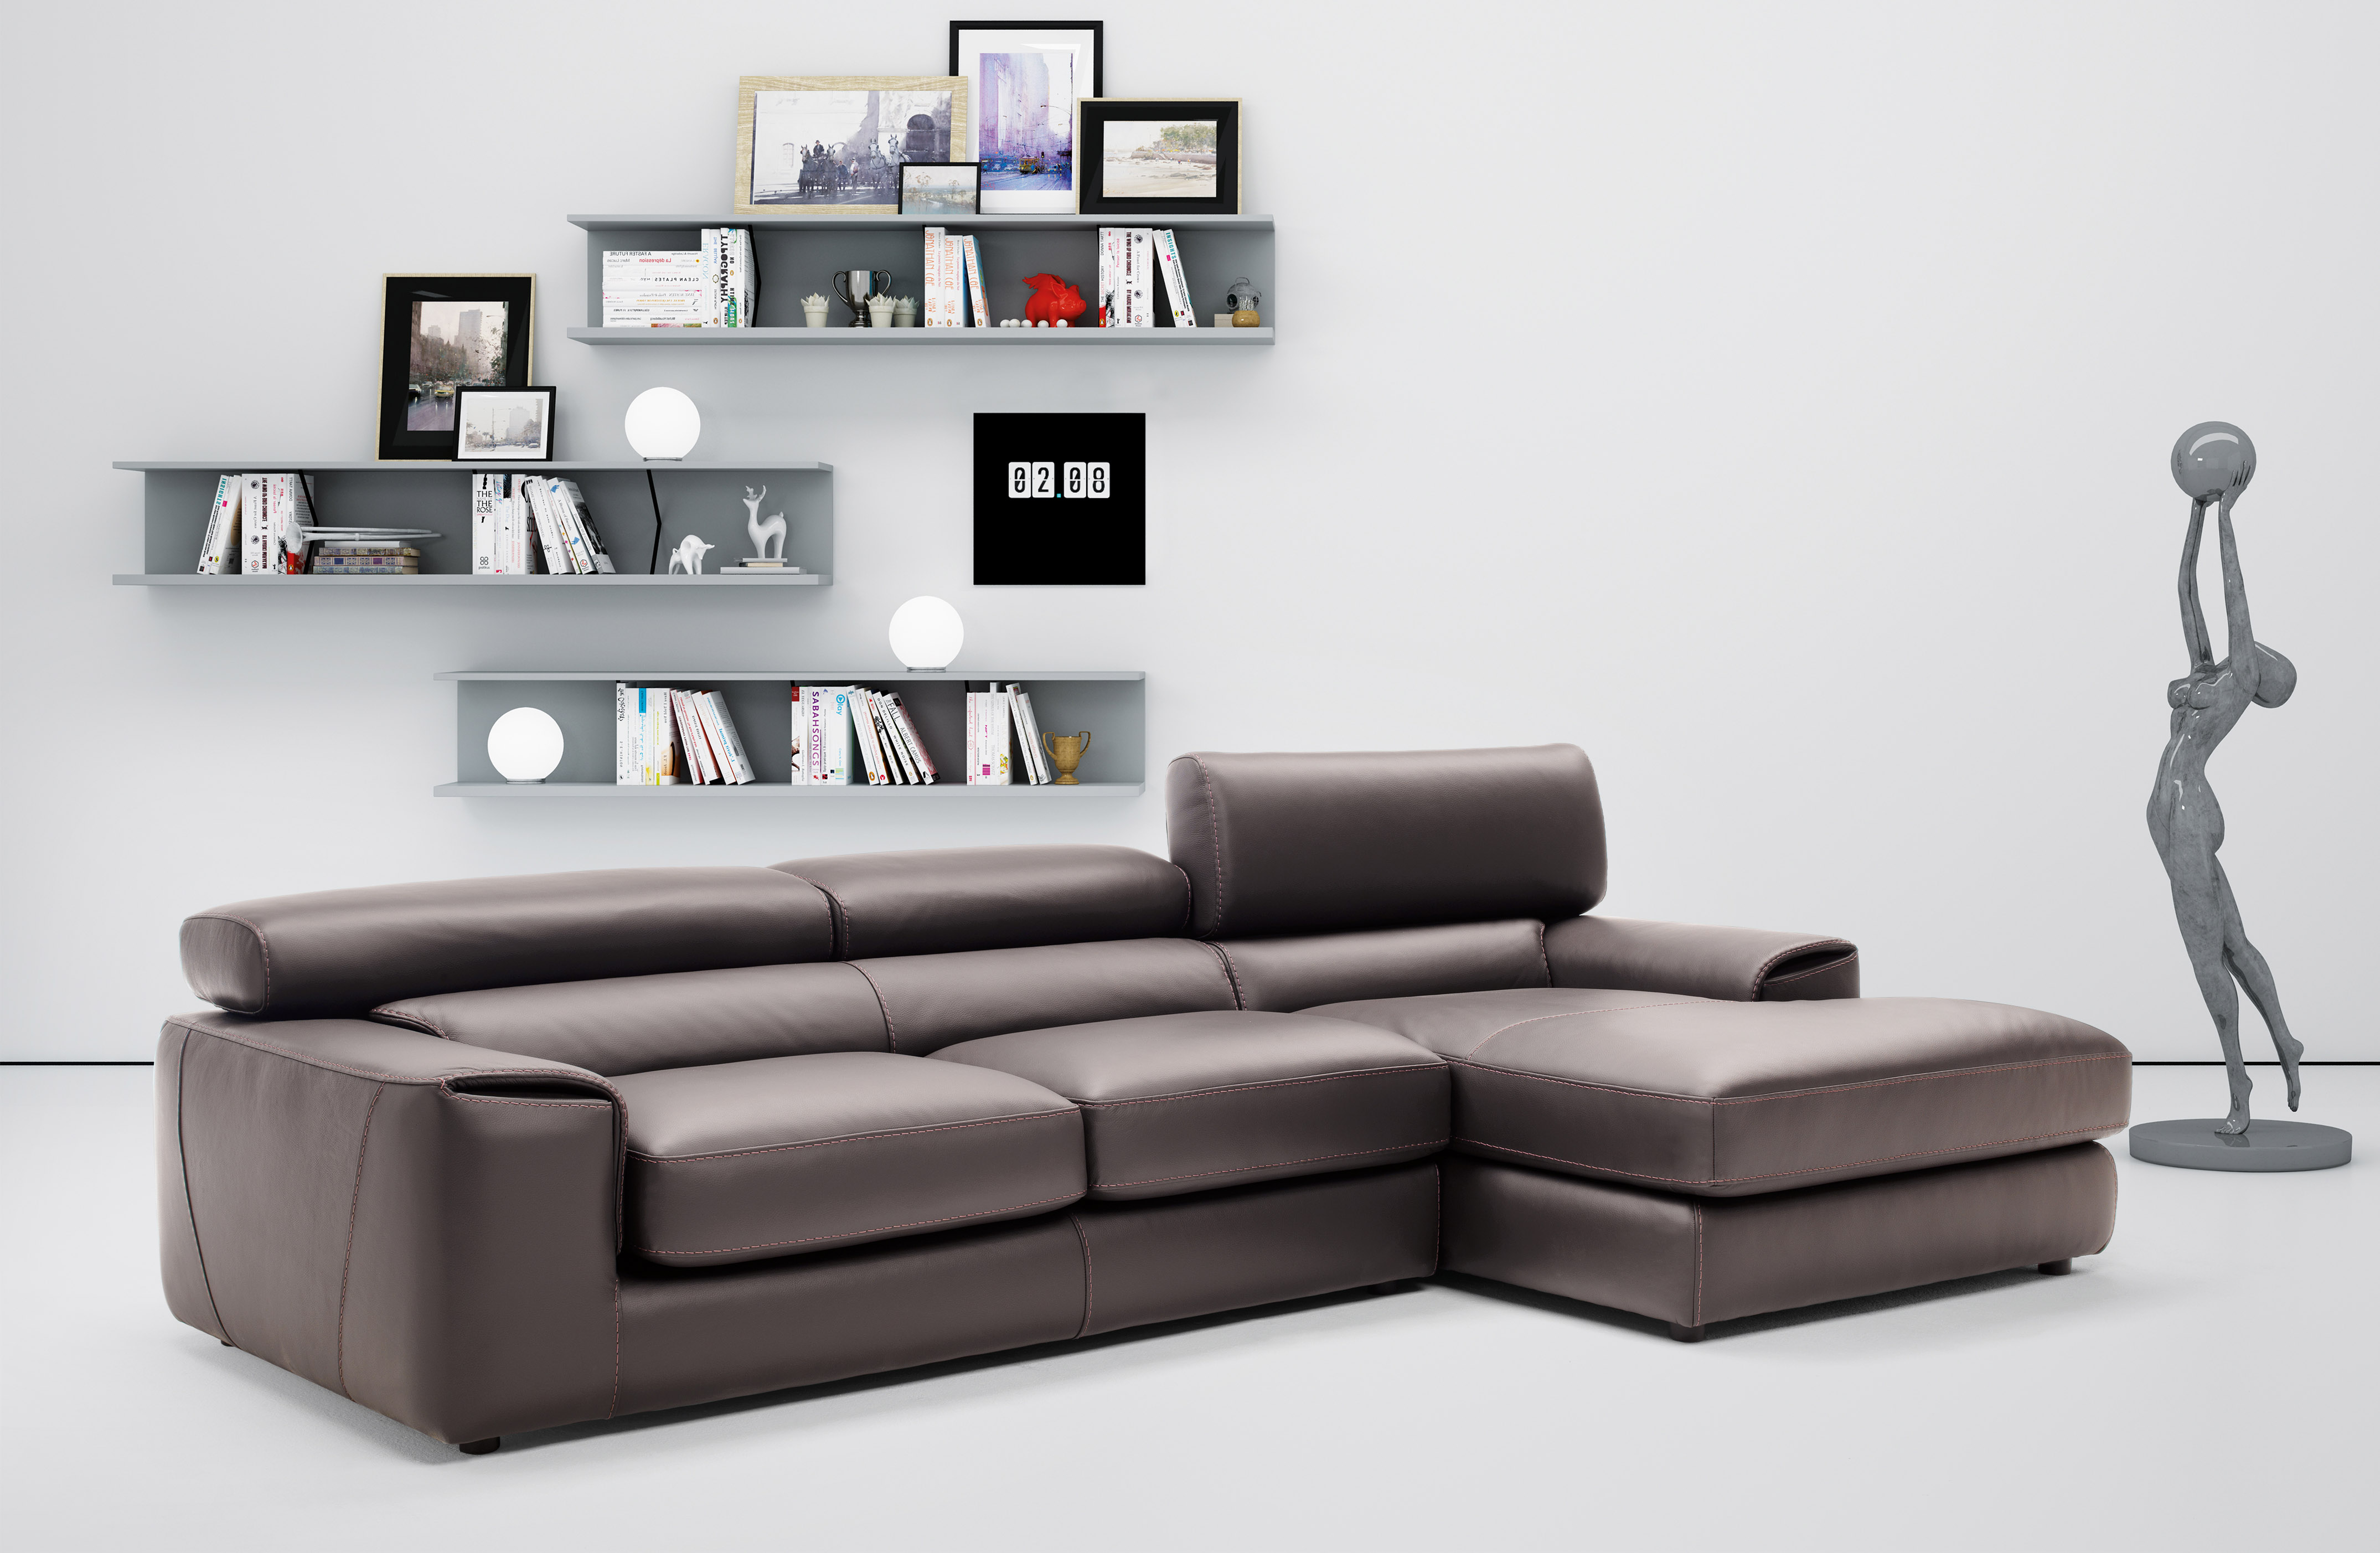 Graceful Full Leather Sectional with Chaise Overland Park Kansas